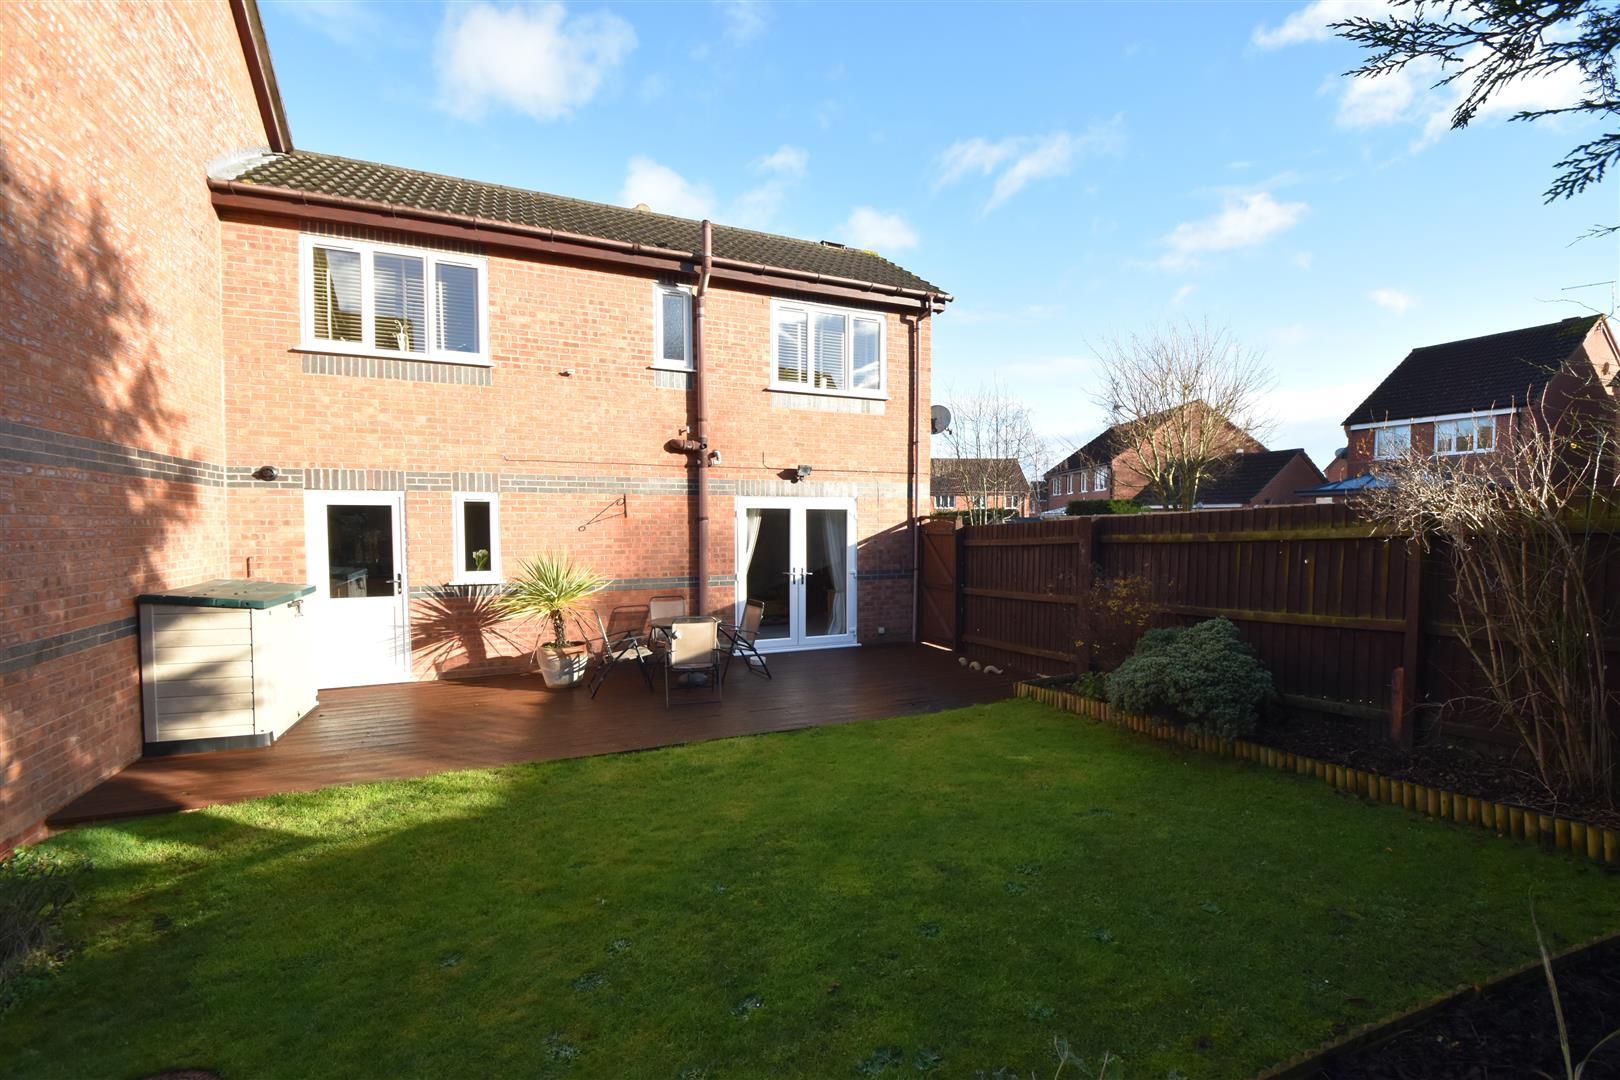 2 Bedrooms Terraced House for sale in Idleton, Worcester